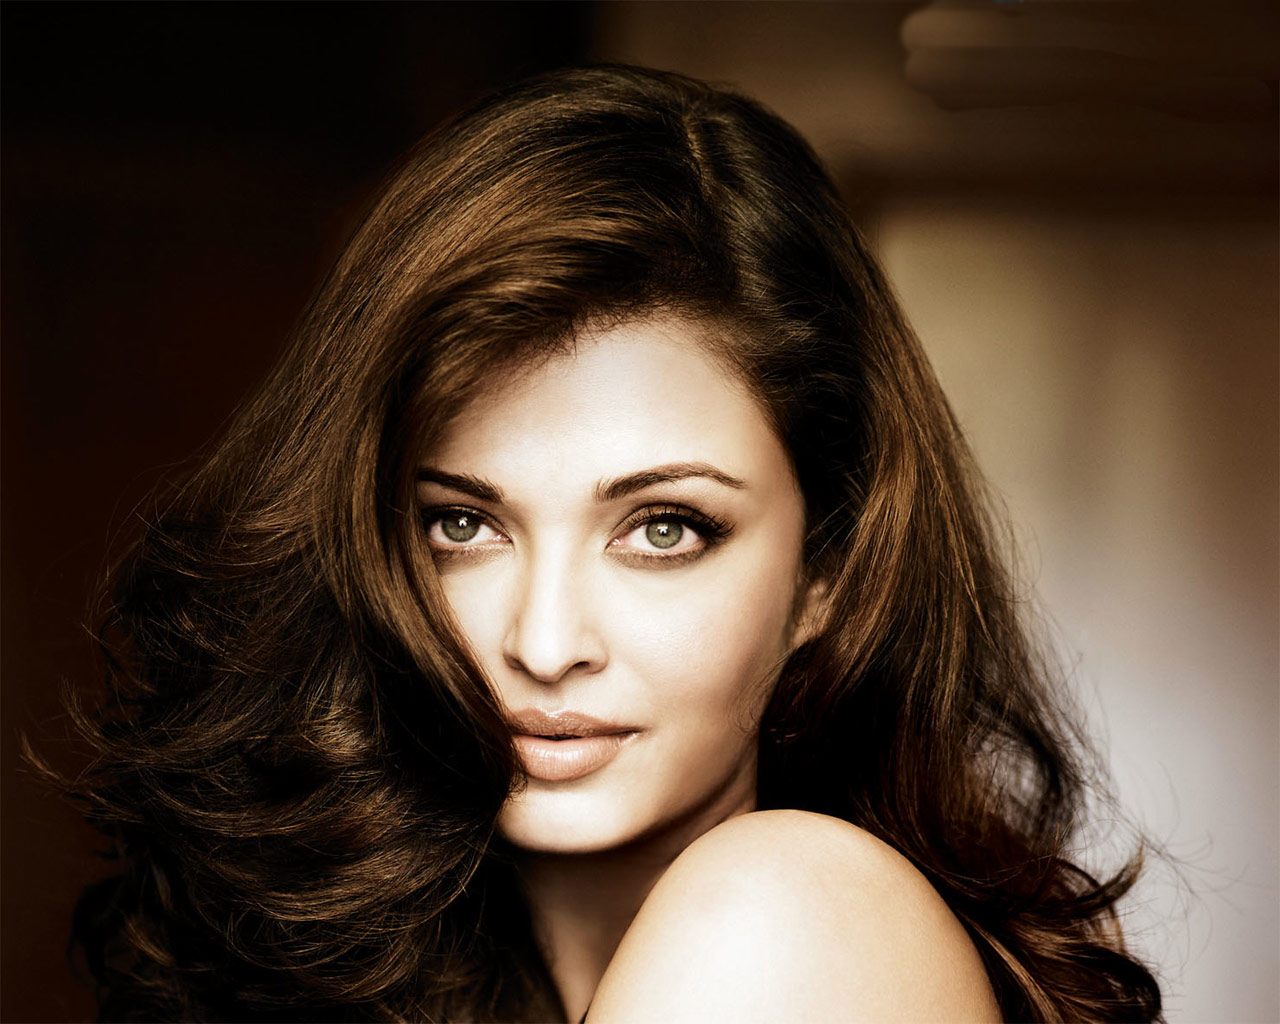 Aishwarya rai bachchan house photos Cached